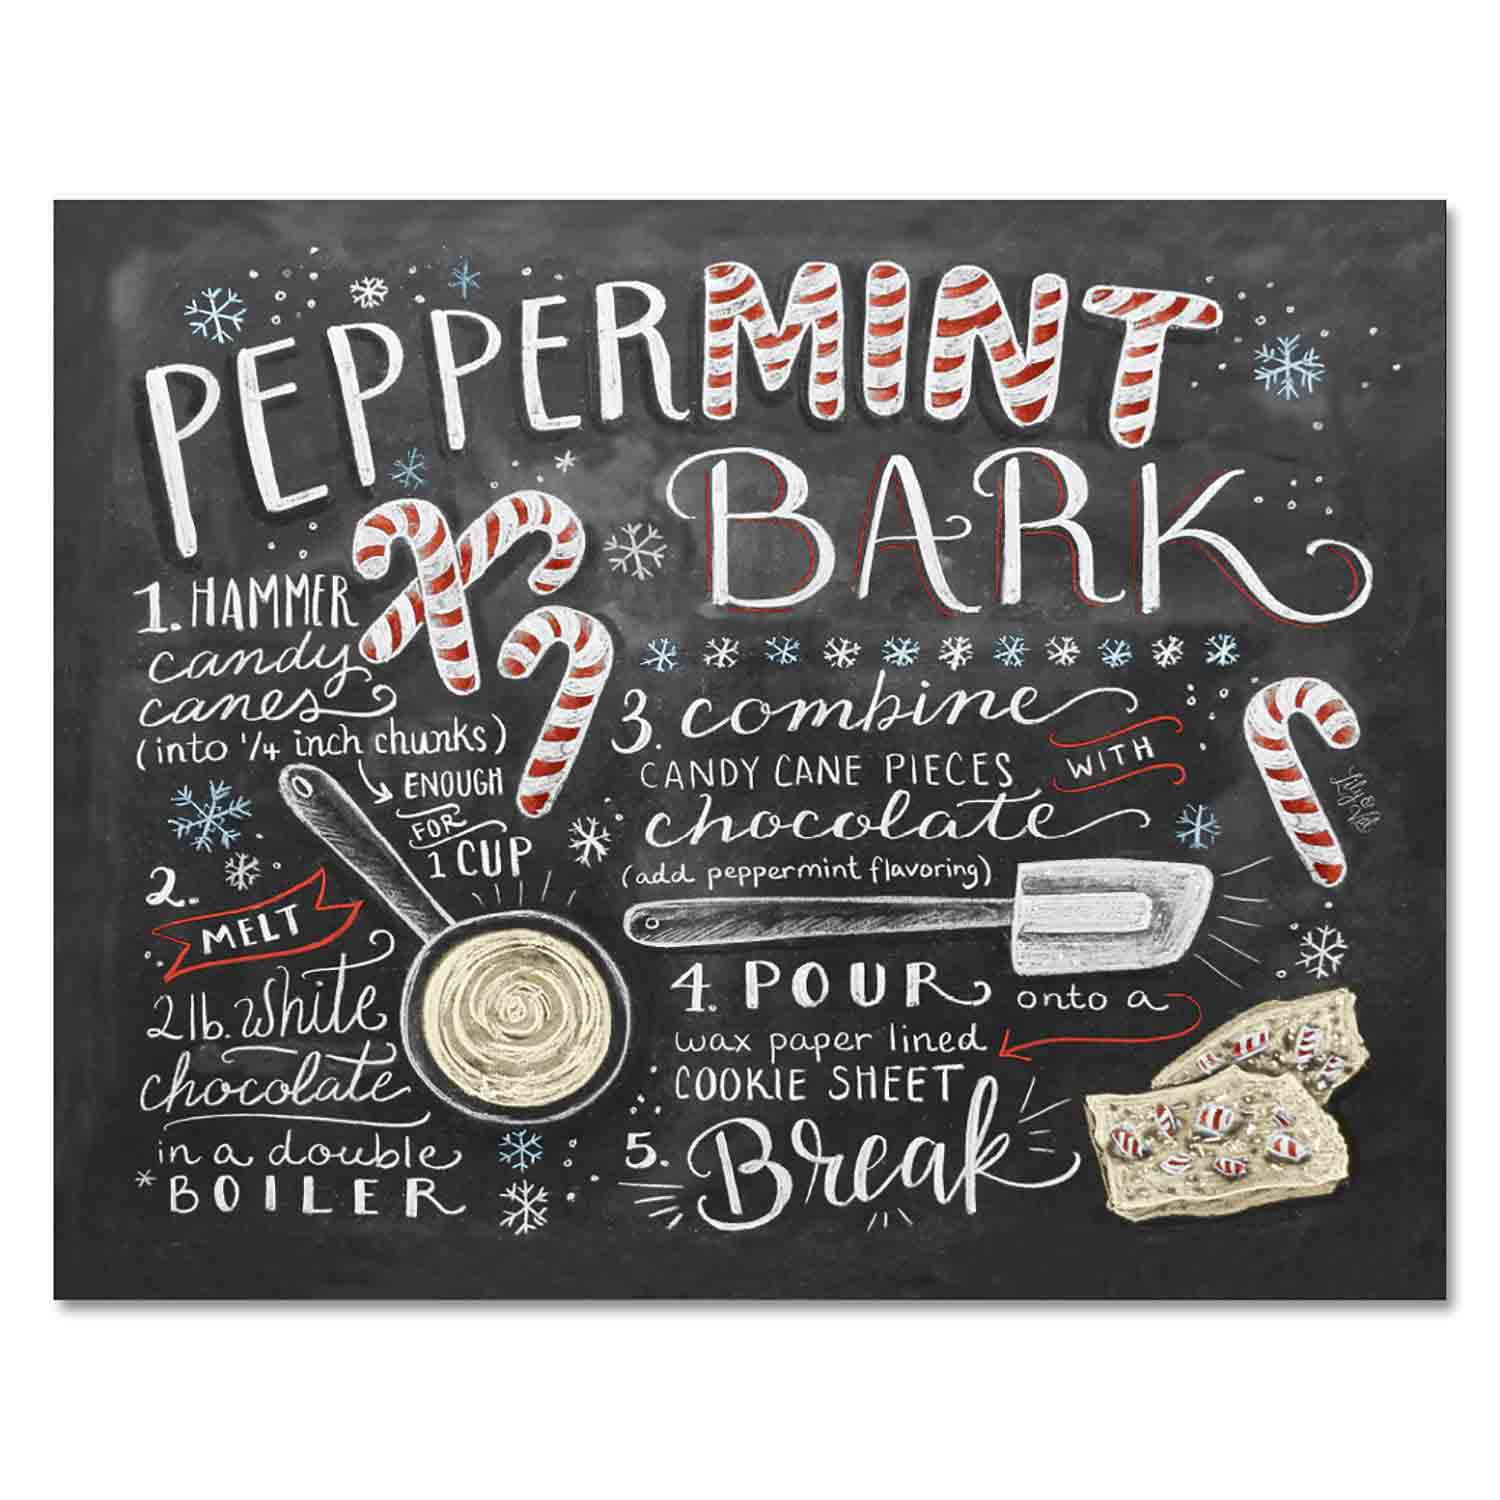 Peppermint Bark - Print